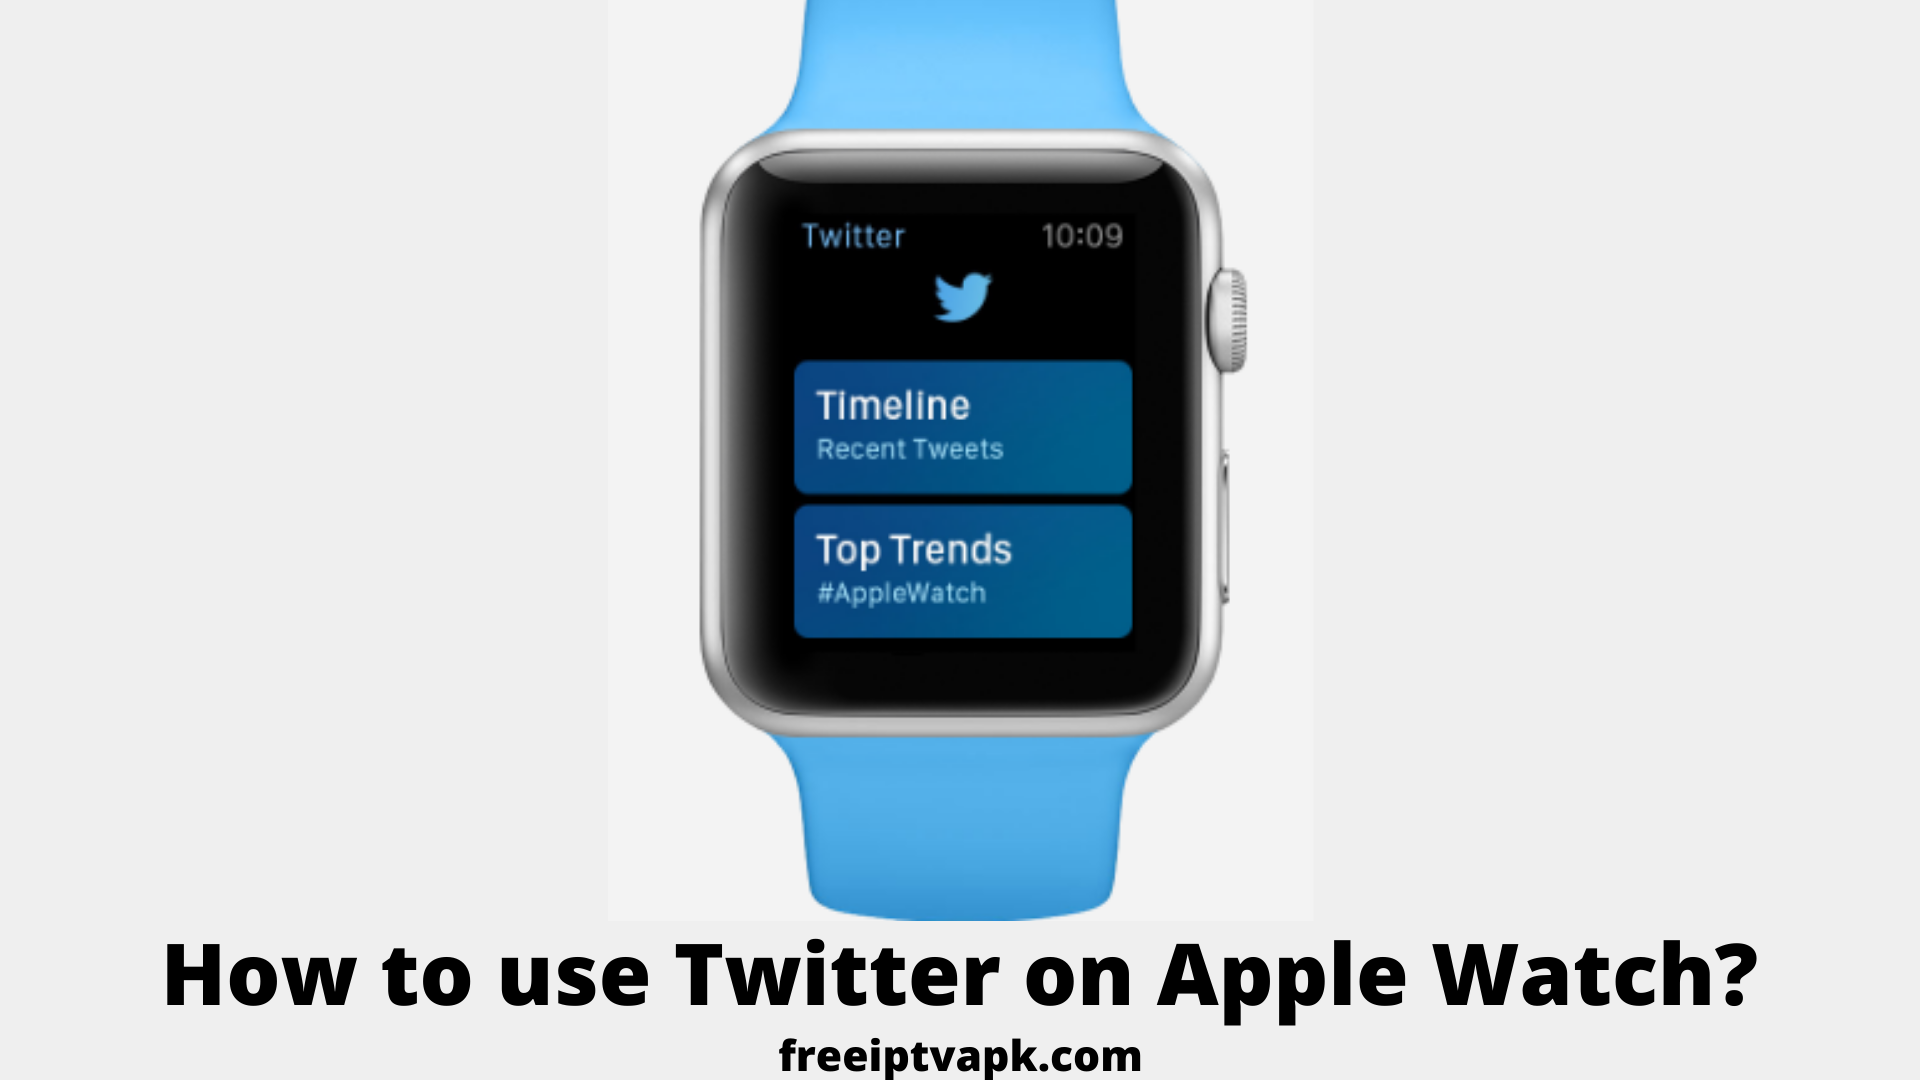 How to use Twitter on Apple Watch?